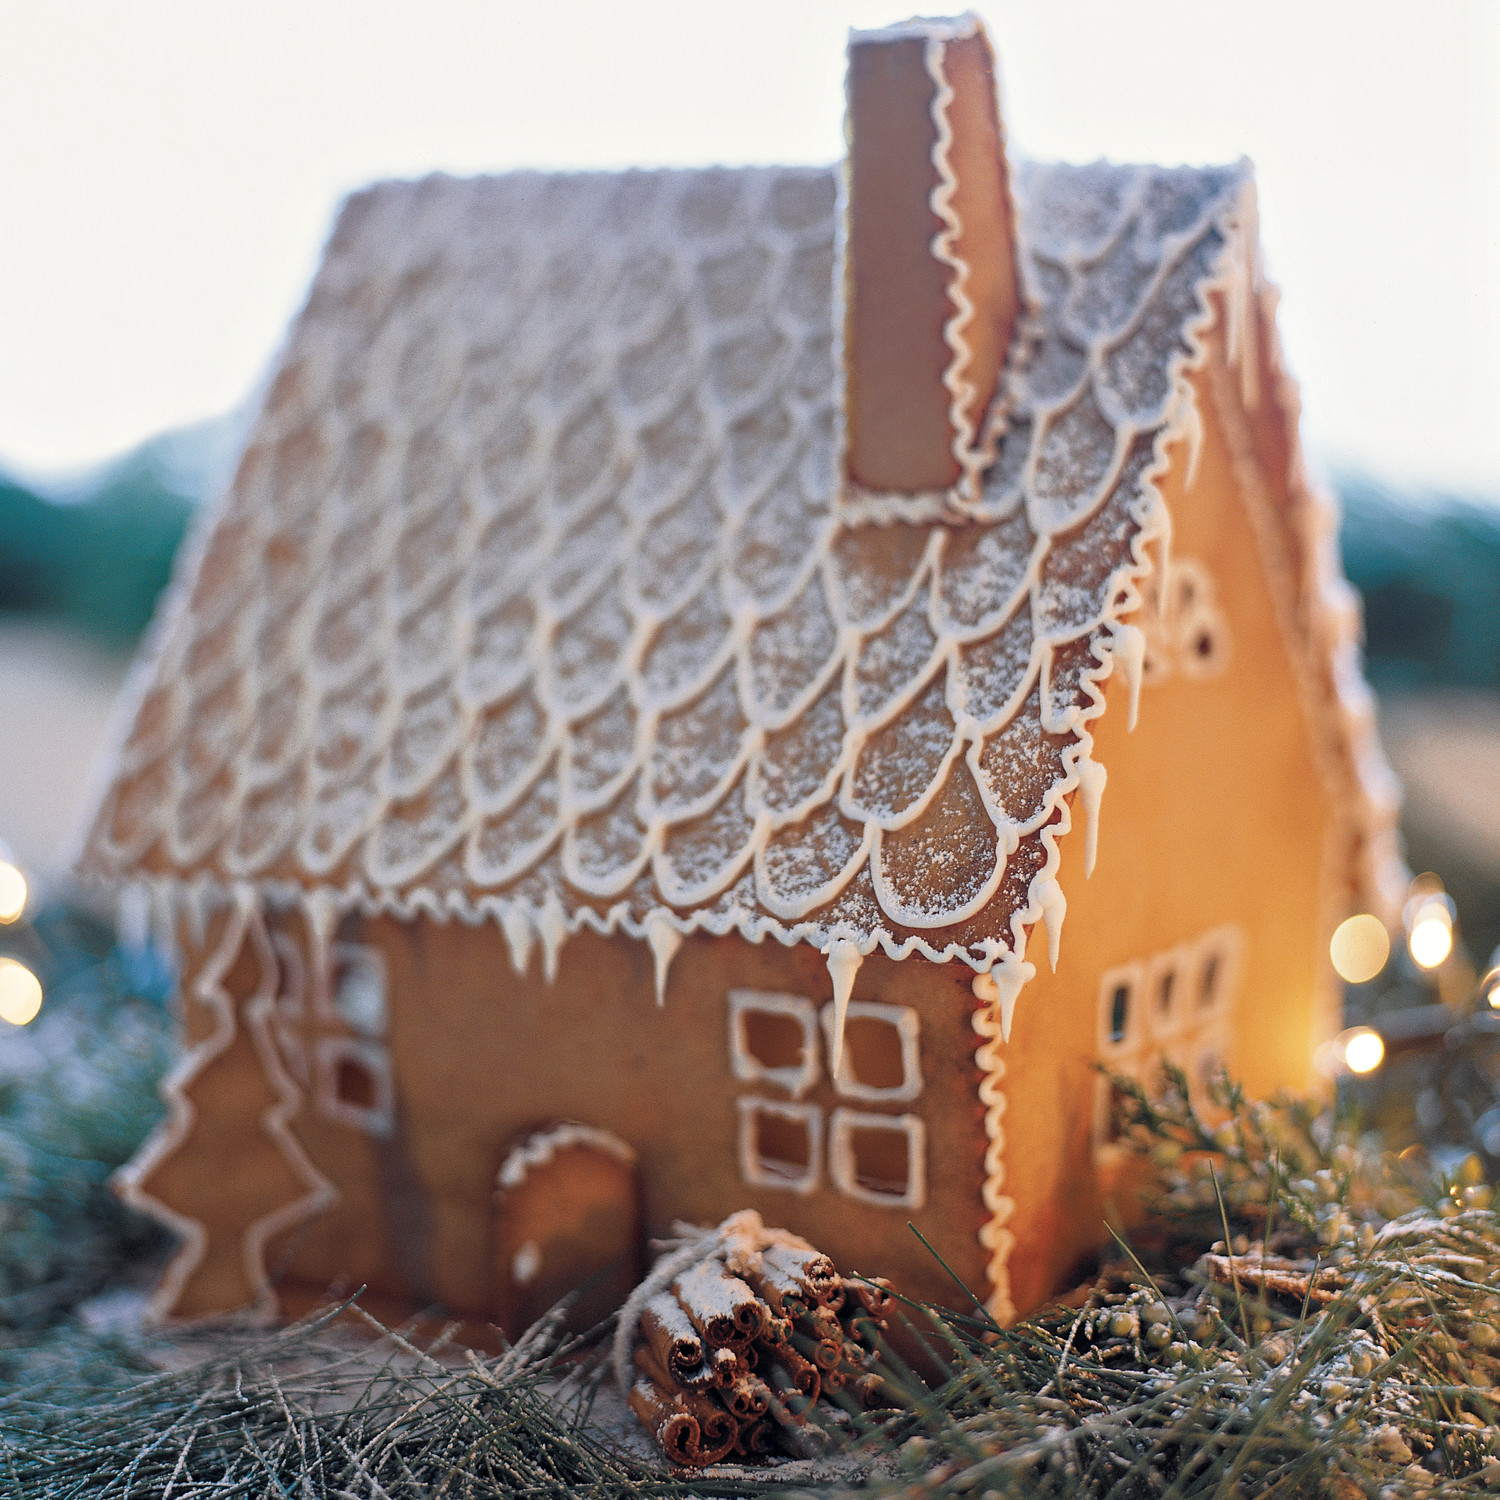 Swedish Gingerbread House Recipe